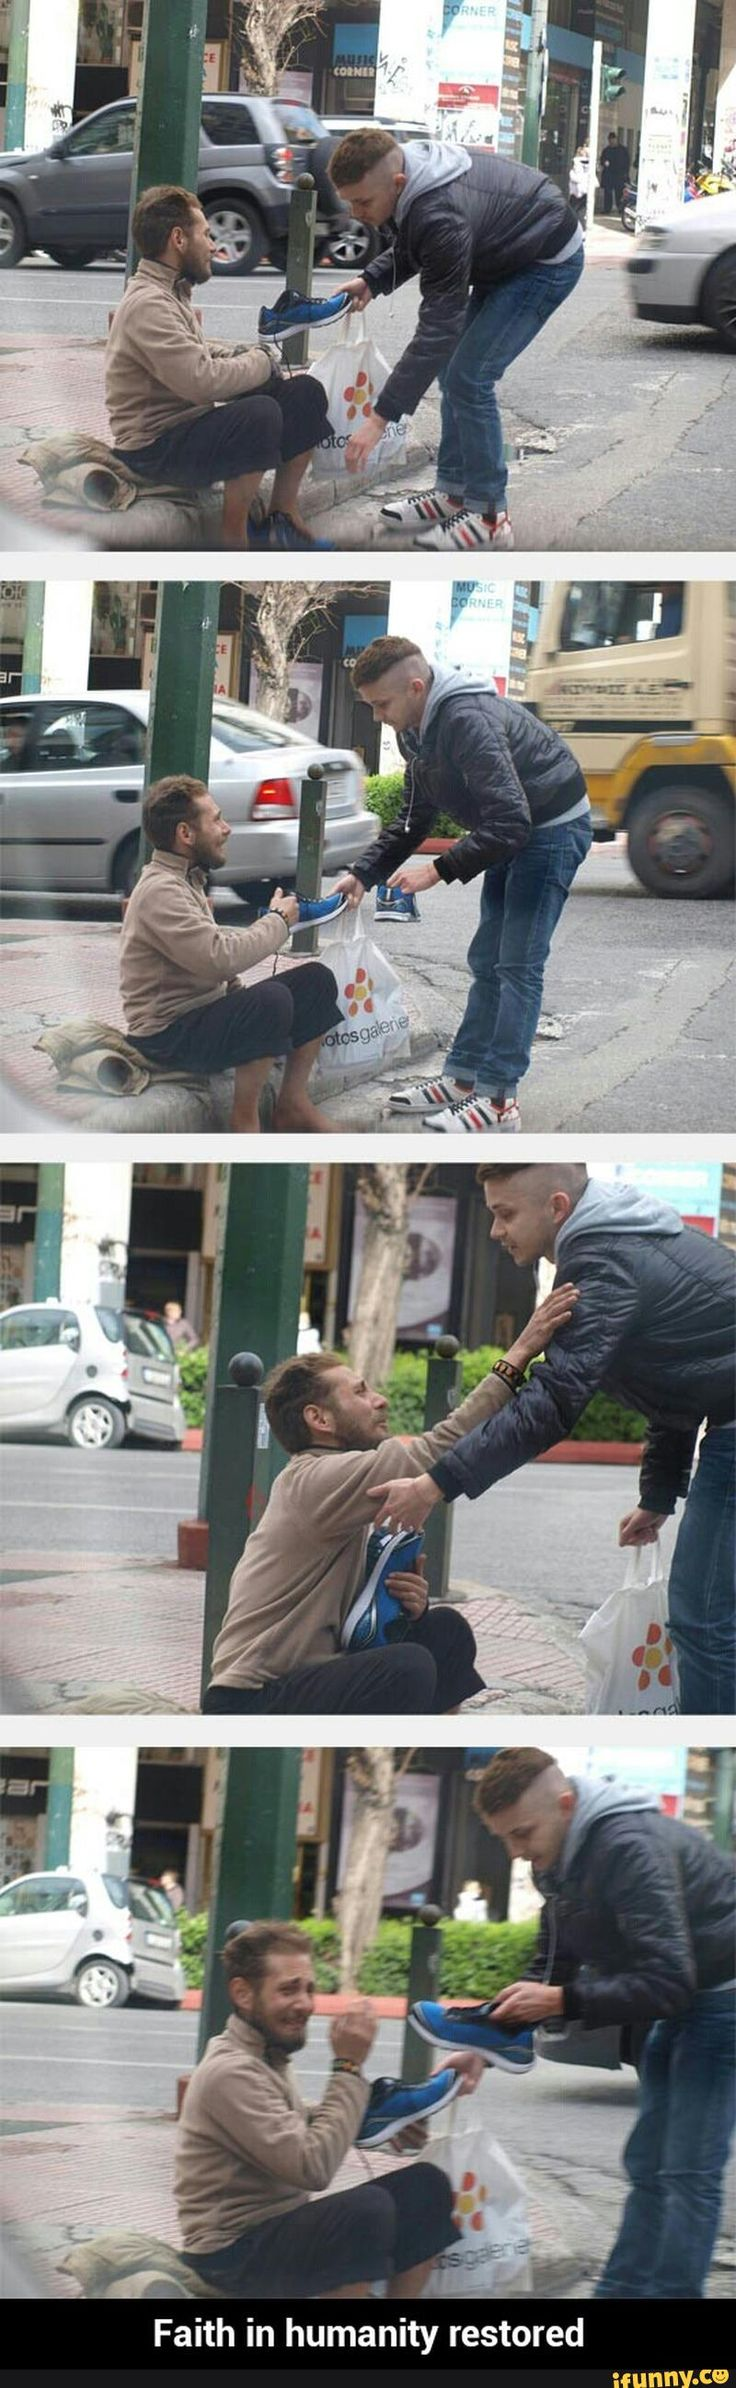 restoring faith in humanity - Google Search